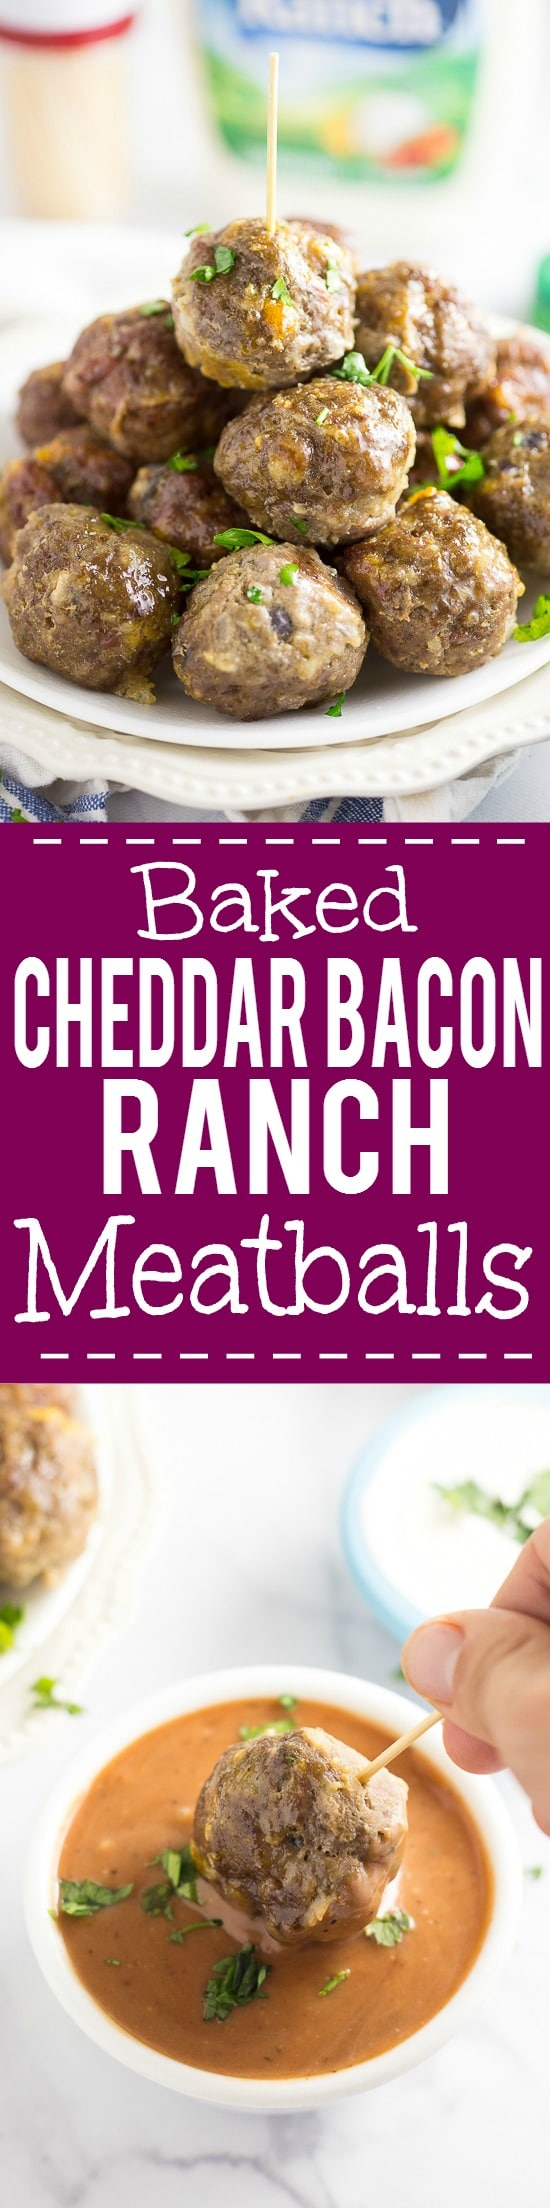 Baked Cheddar Bacon Ranch Meatballs Recipe -These tangy, zesty Baked Cheddar Bacon Ranch Meatballs have a to-die-for flavor combo and are baked in the oven for a delicious, quick and easy appetizer recipe.